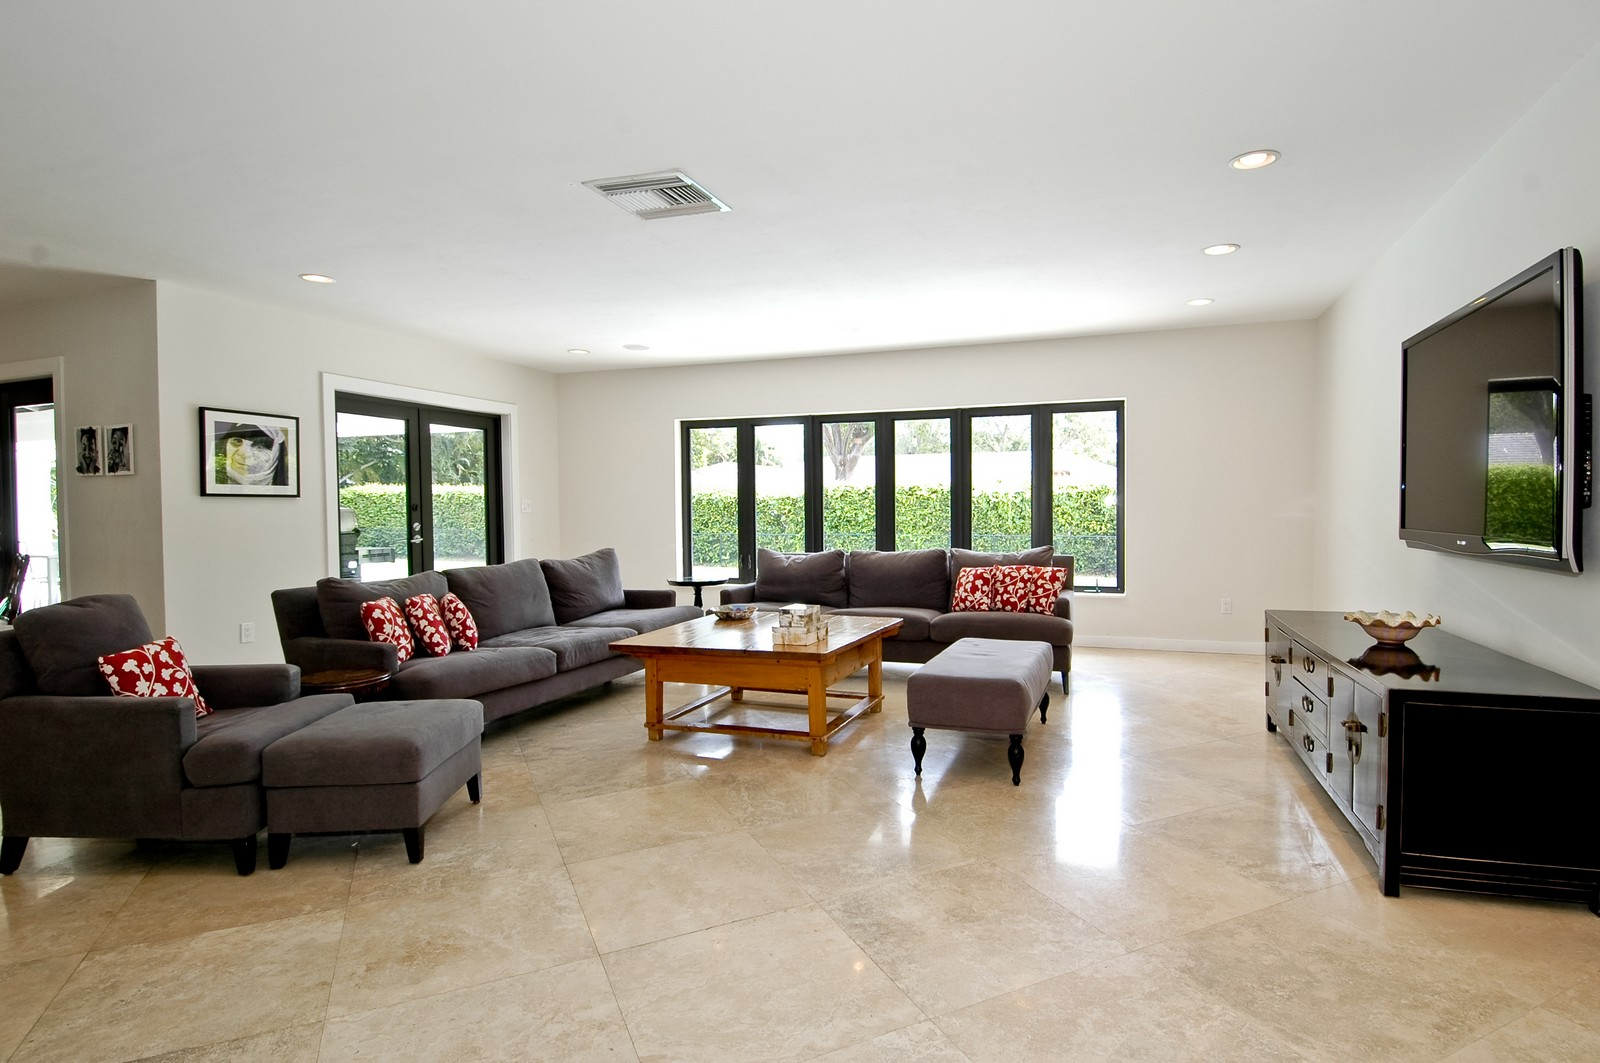 Real Estate Photography - 5900 SW 116th St, Coral Gables, FL, 33156 - Location 1